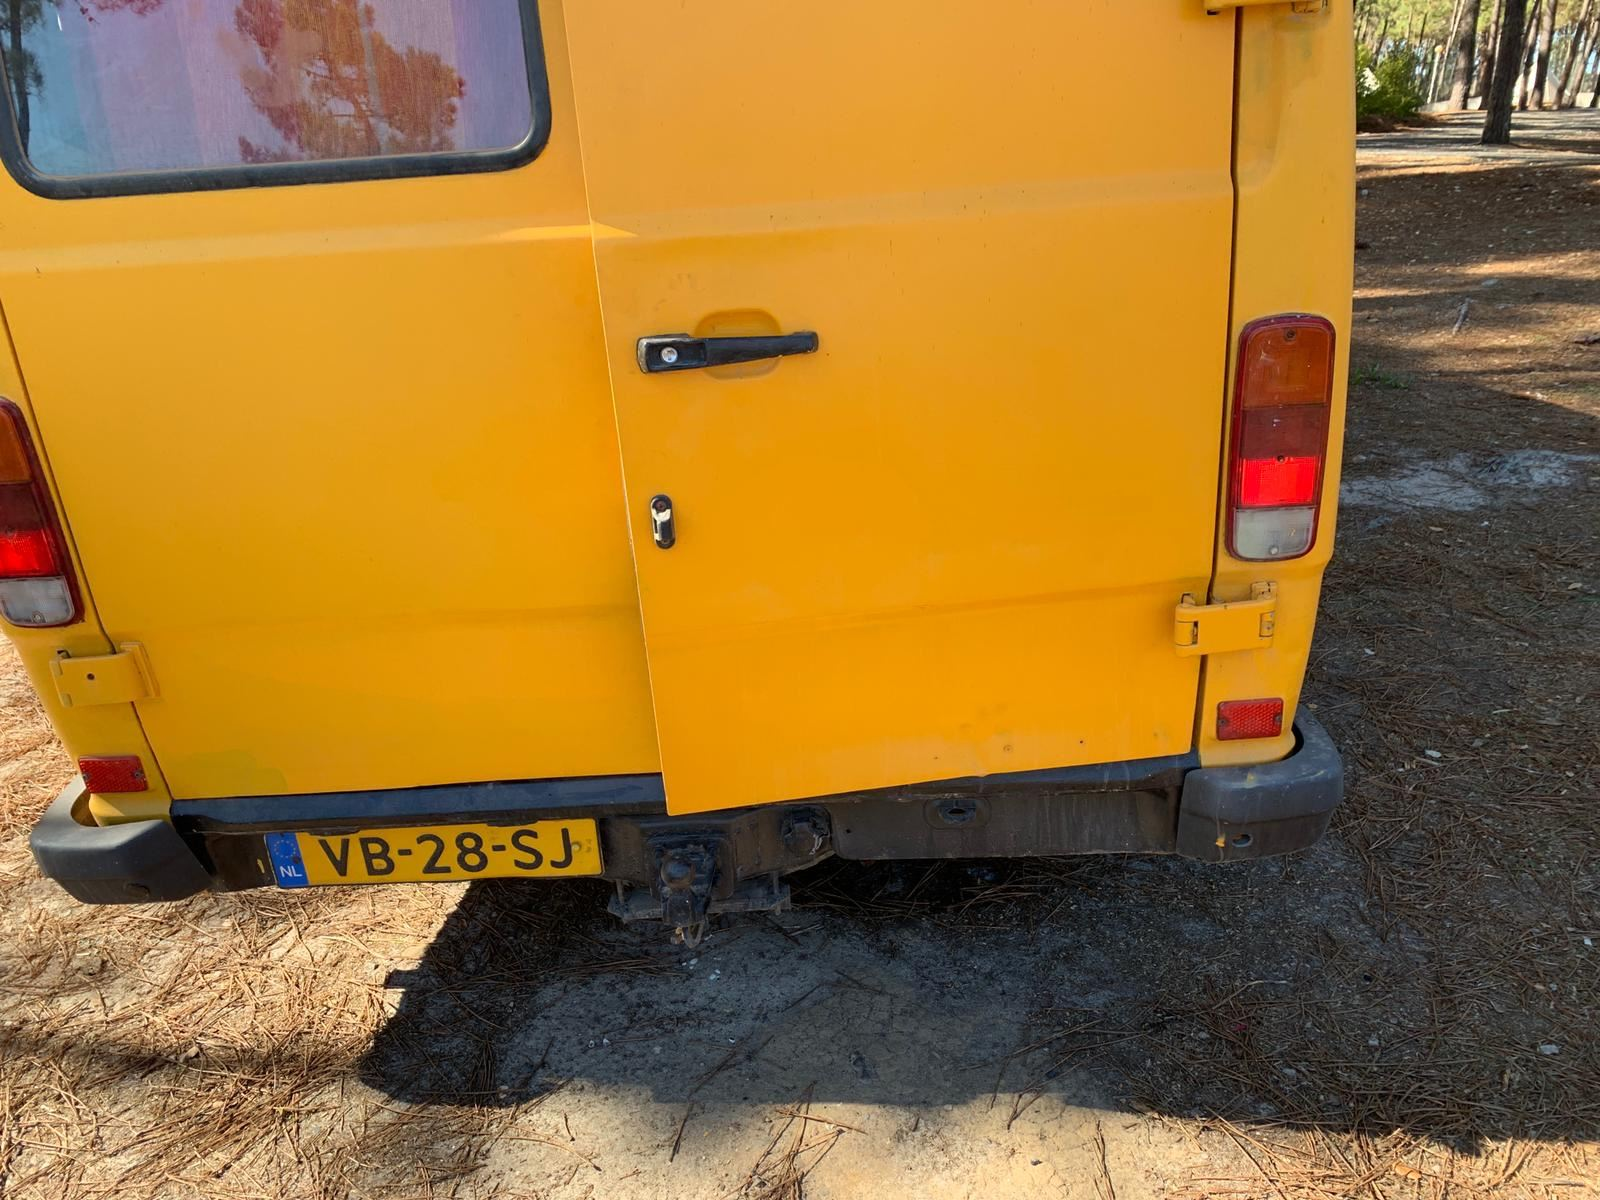 Campervan Portugal Brake Light Repair